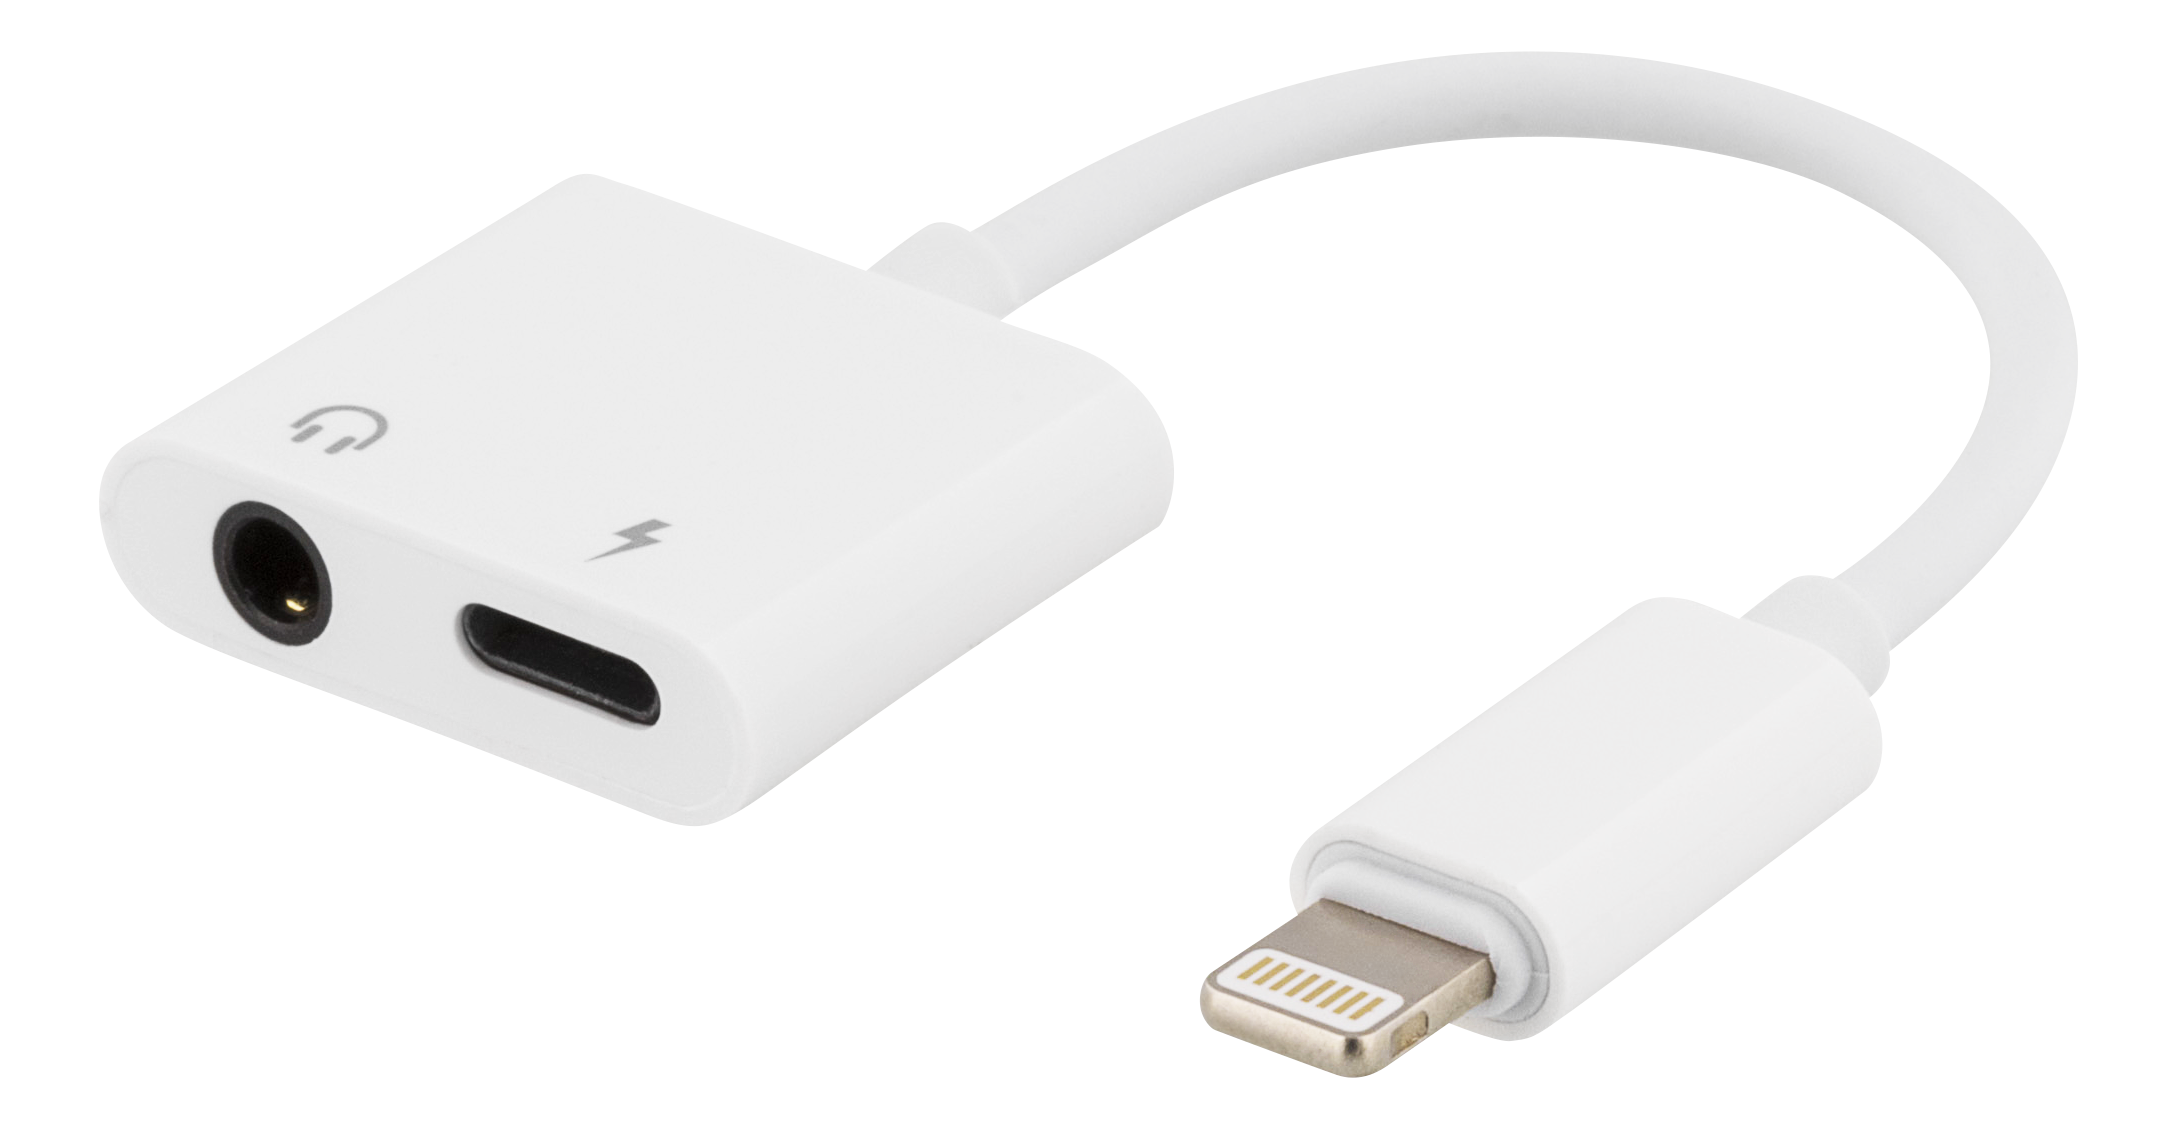 Epzi Lightning to 3,5 mm adapter, support charge and music, white IPLH-586